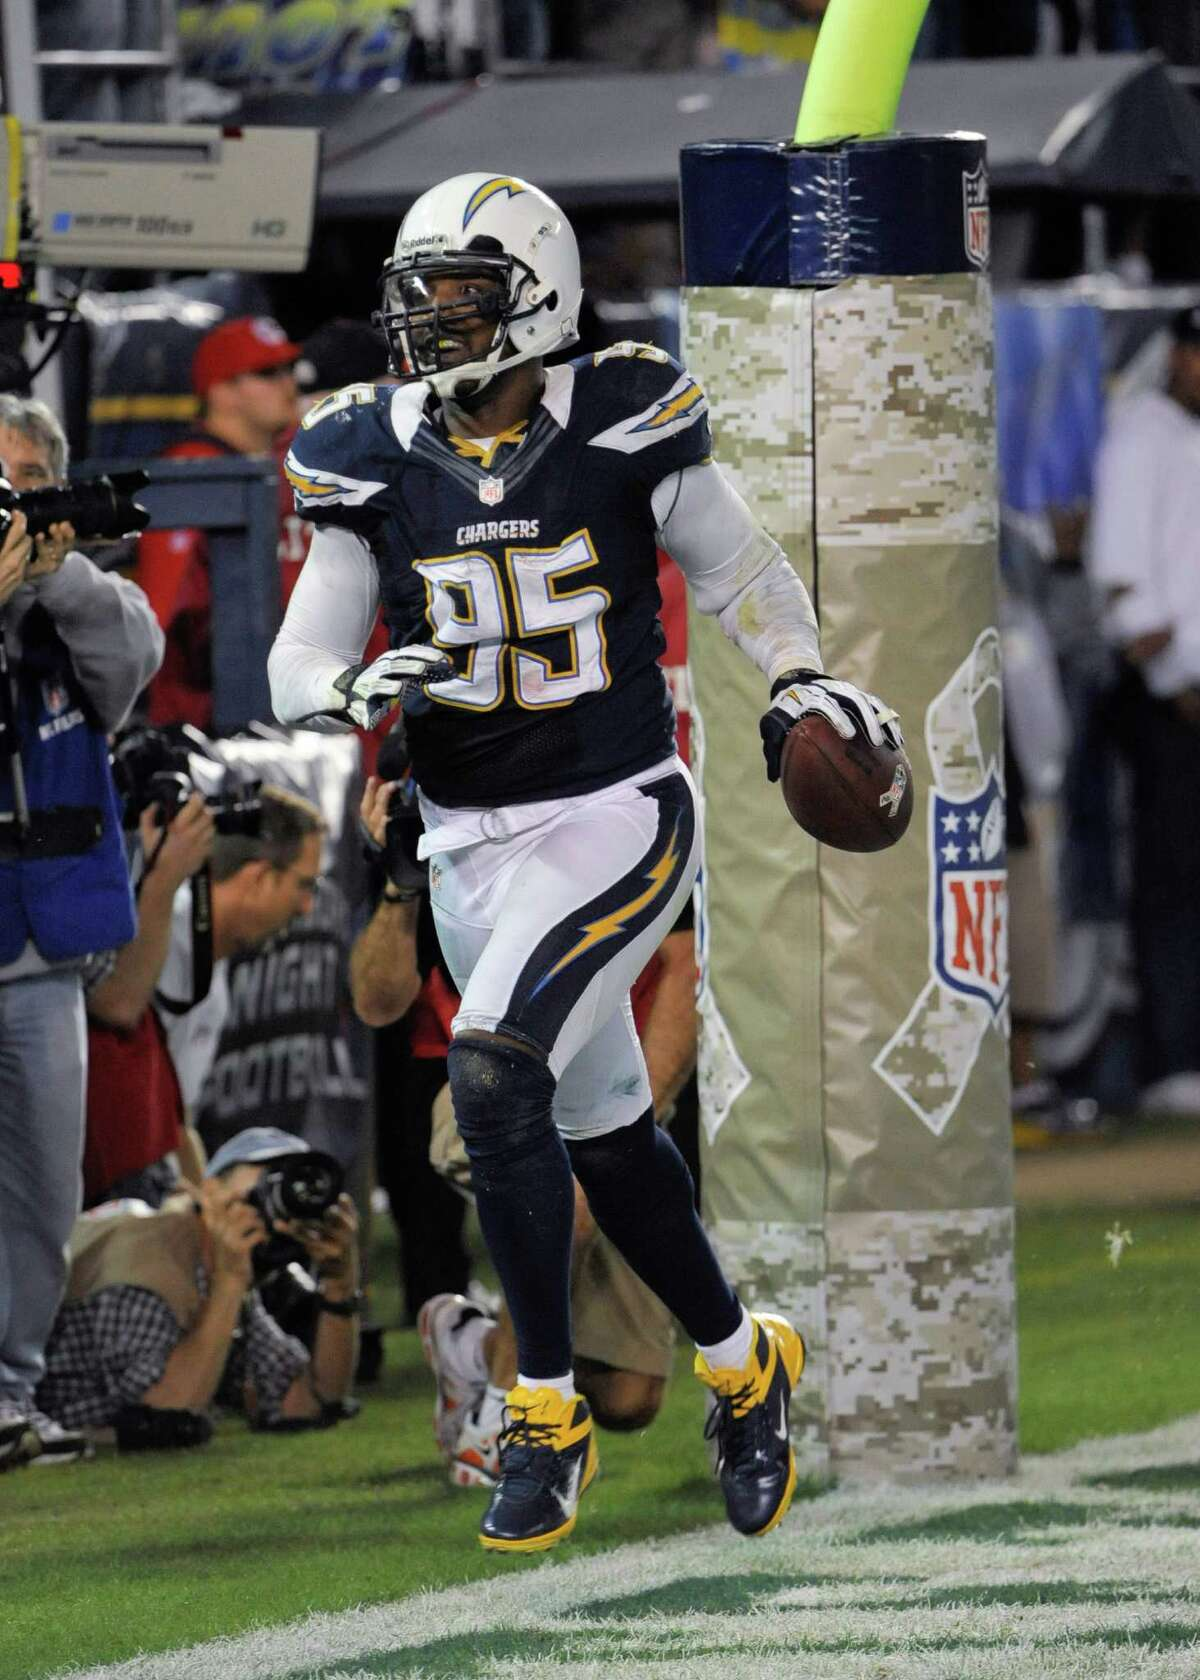 San Diego Chargers linebacker Shaun Phillips celebrates after recovering a Kansas City Chiefs' fumble in the end zone for a touchdown during the second half of the Chargers' 31-13 victory in an NFL football game Thursday, Nov. 1, 2012, in San Diego. (AP Photo/Denis Poroy)